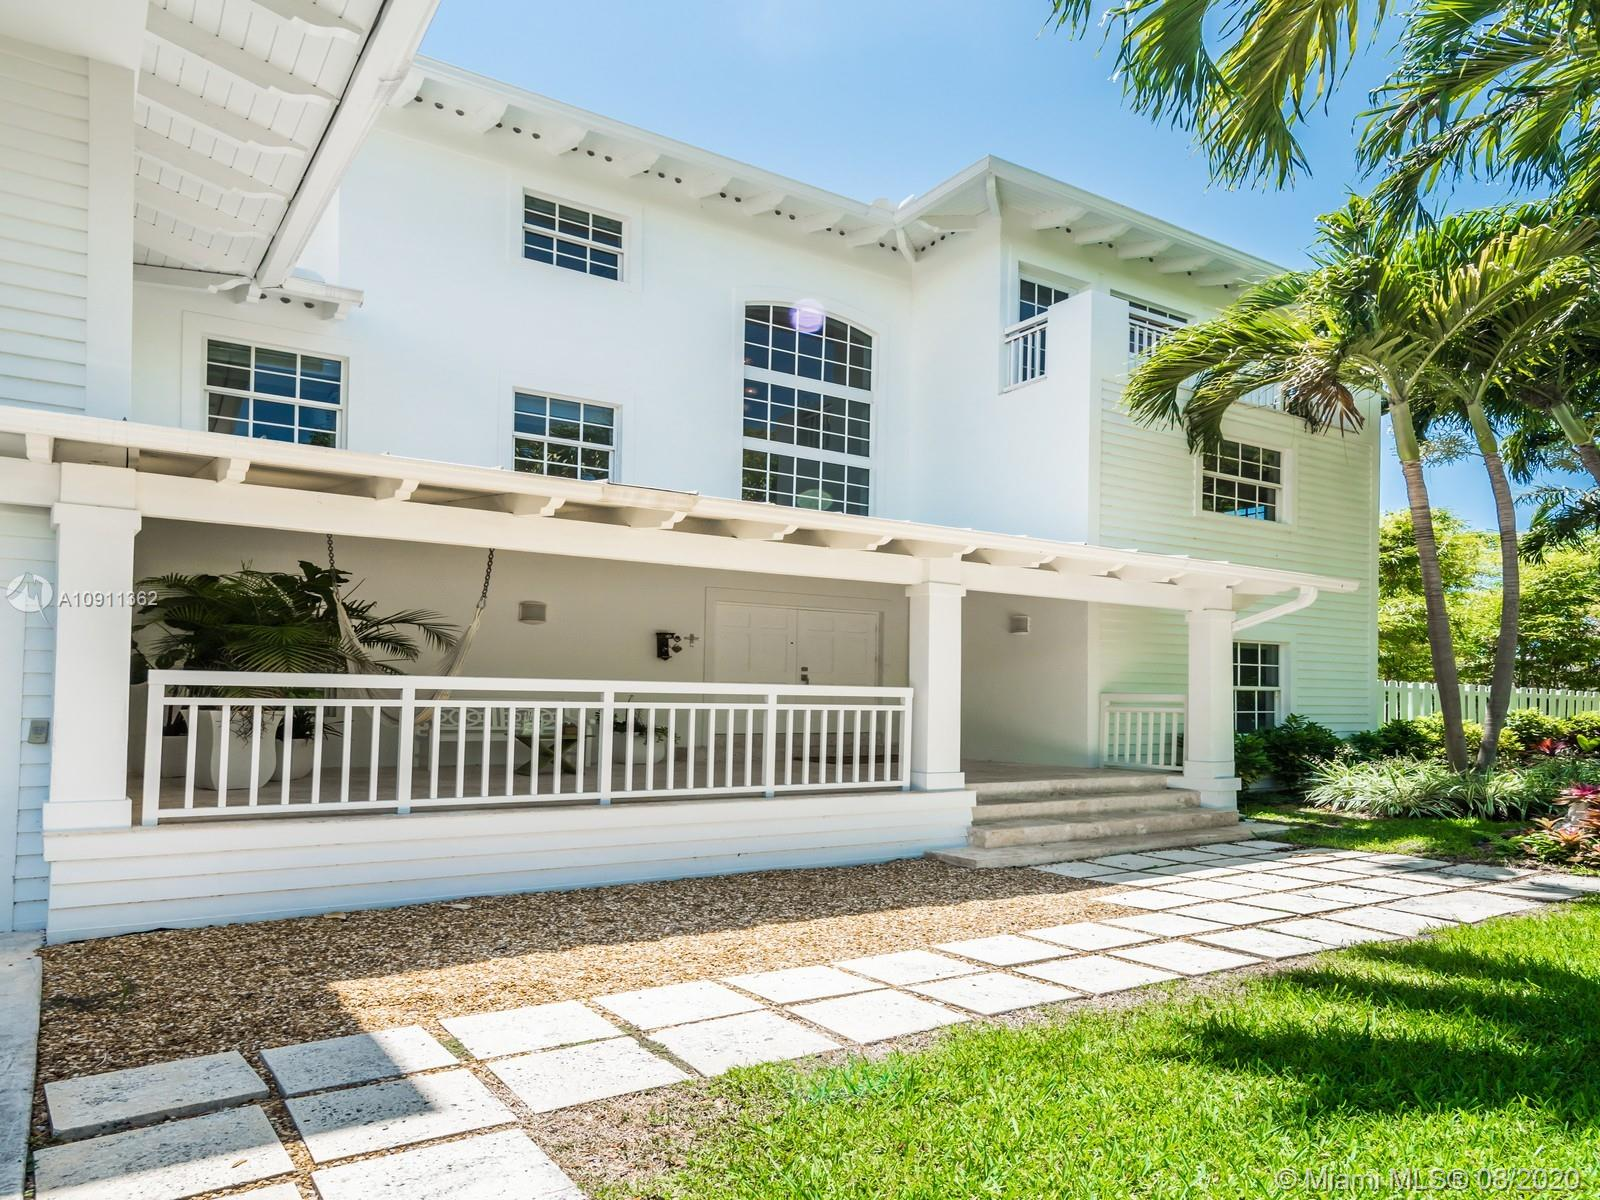 Details for 325 Pacific Rd, Key Biscayne, FL 33149